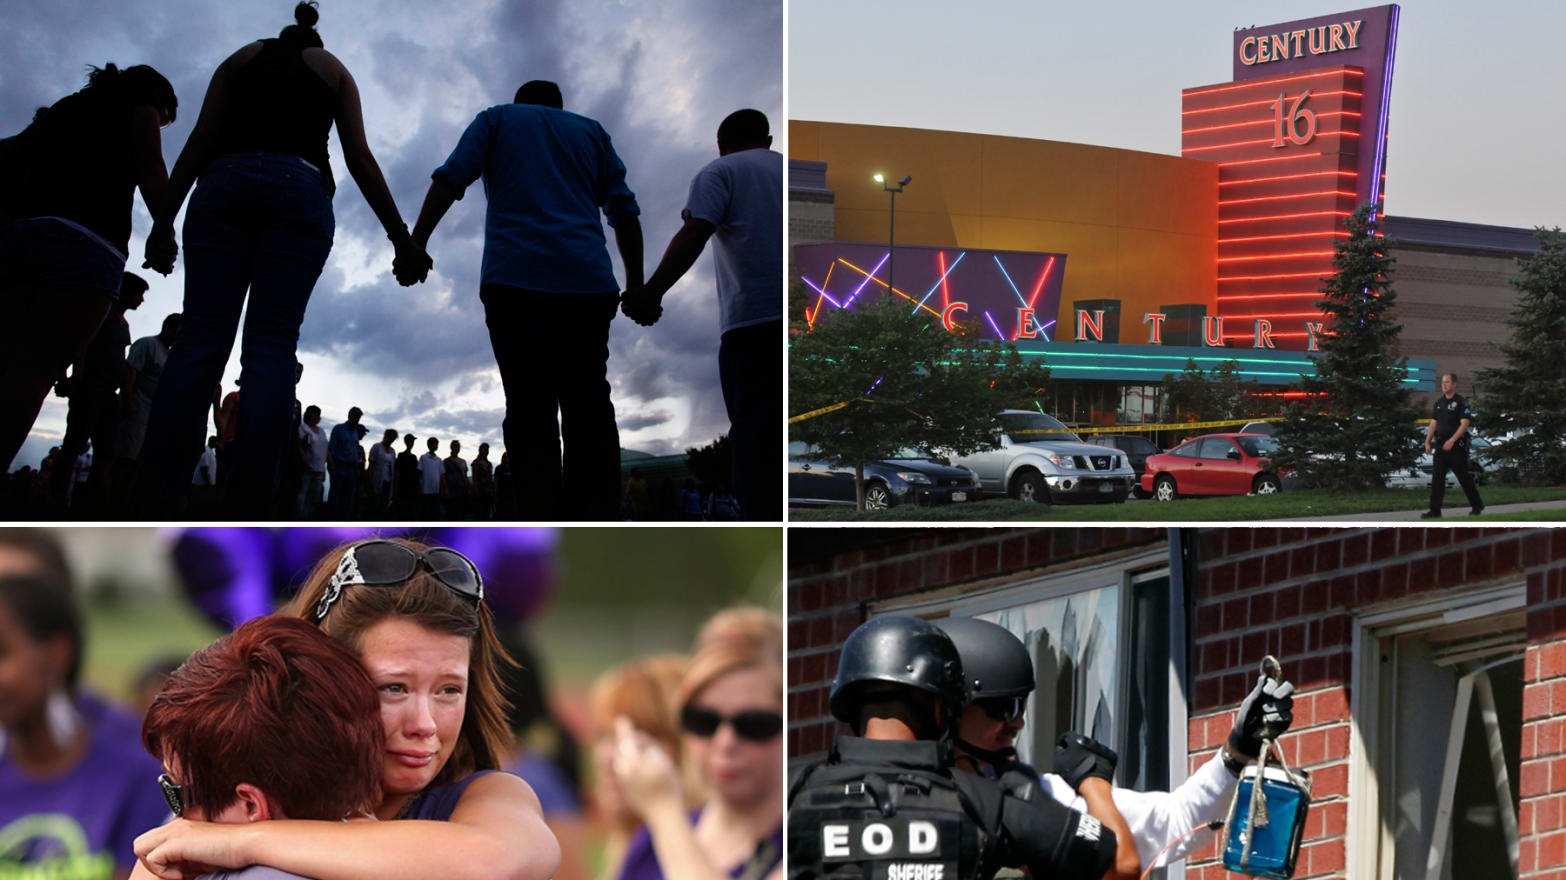 Scenes From the Aftermath of Colorado's 'Batman' Shootings